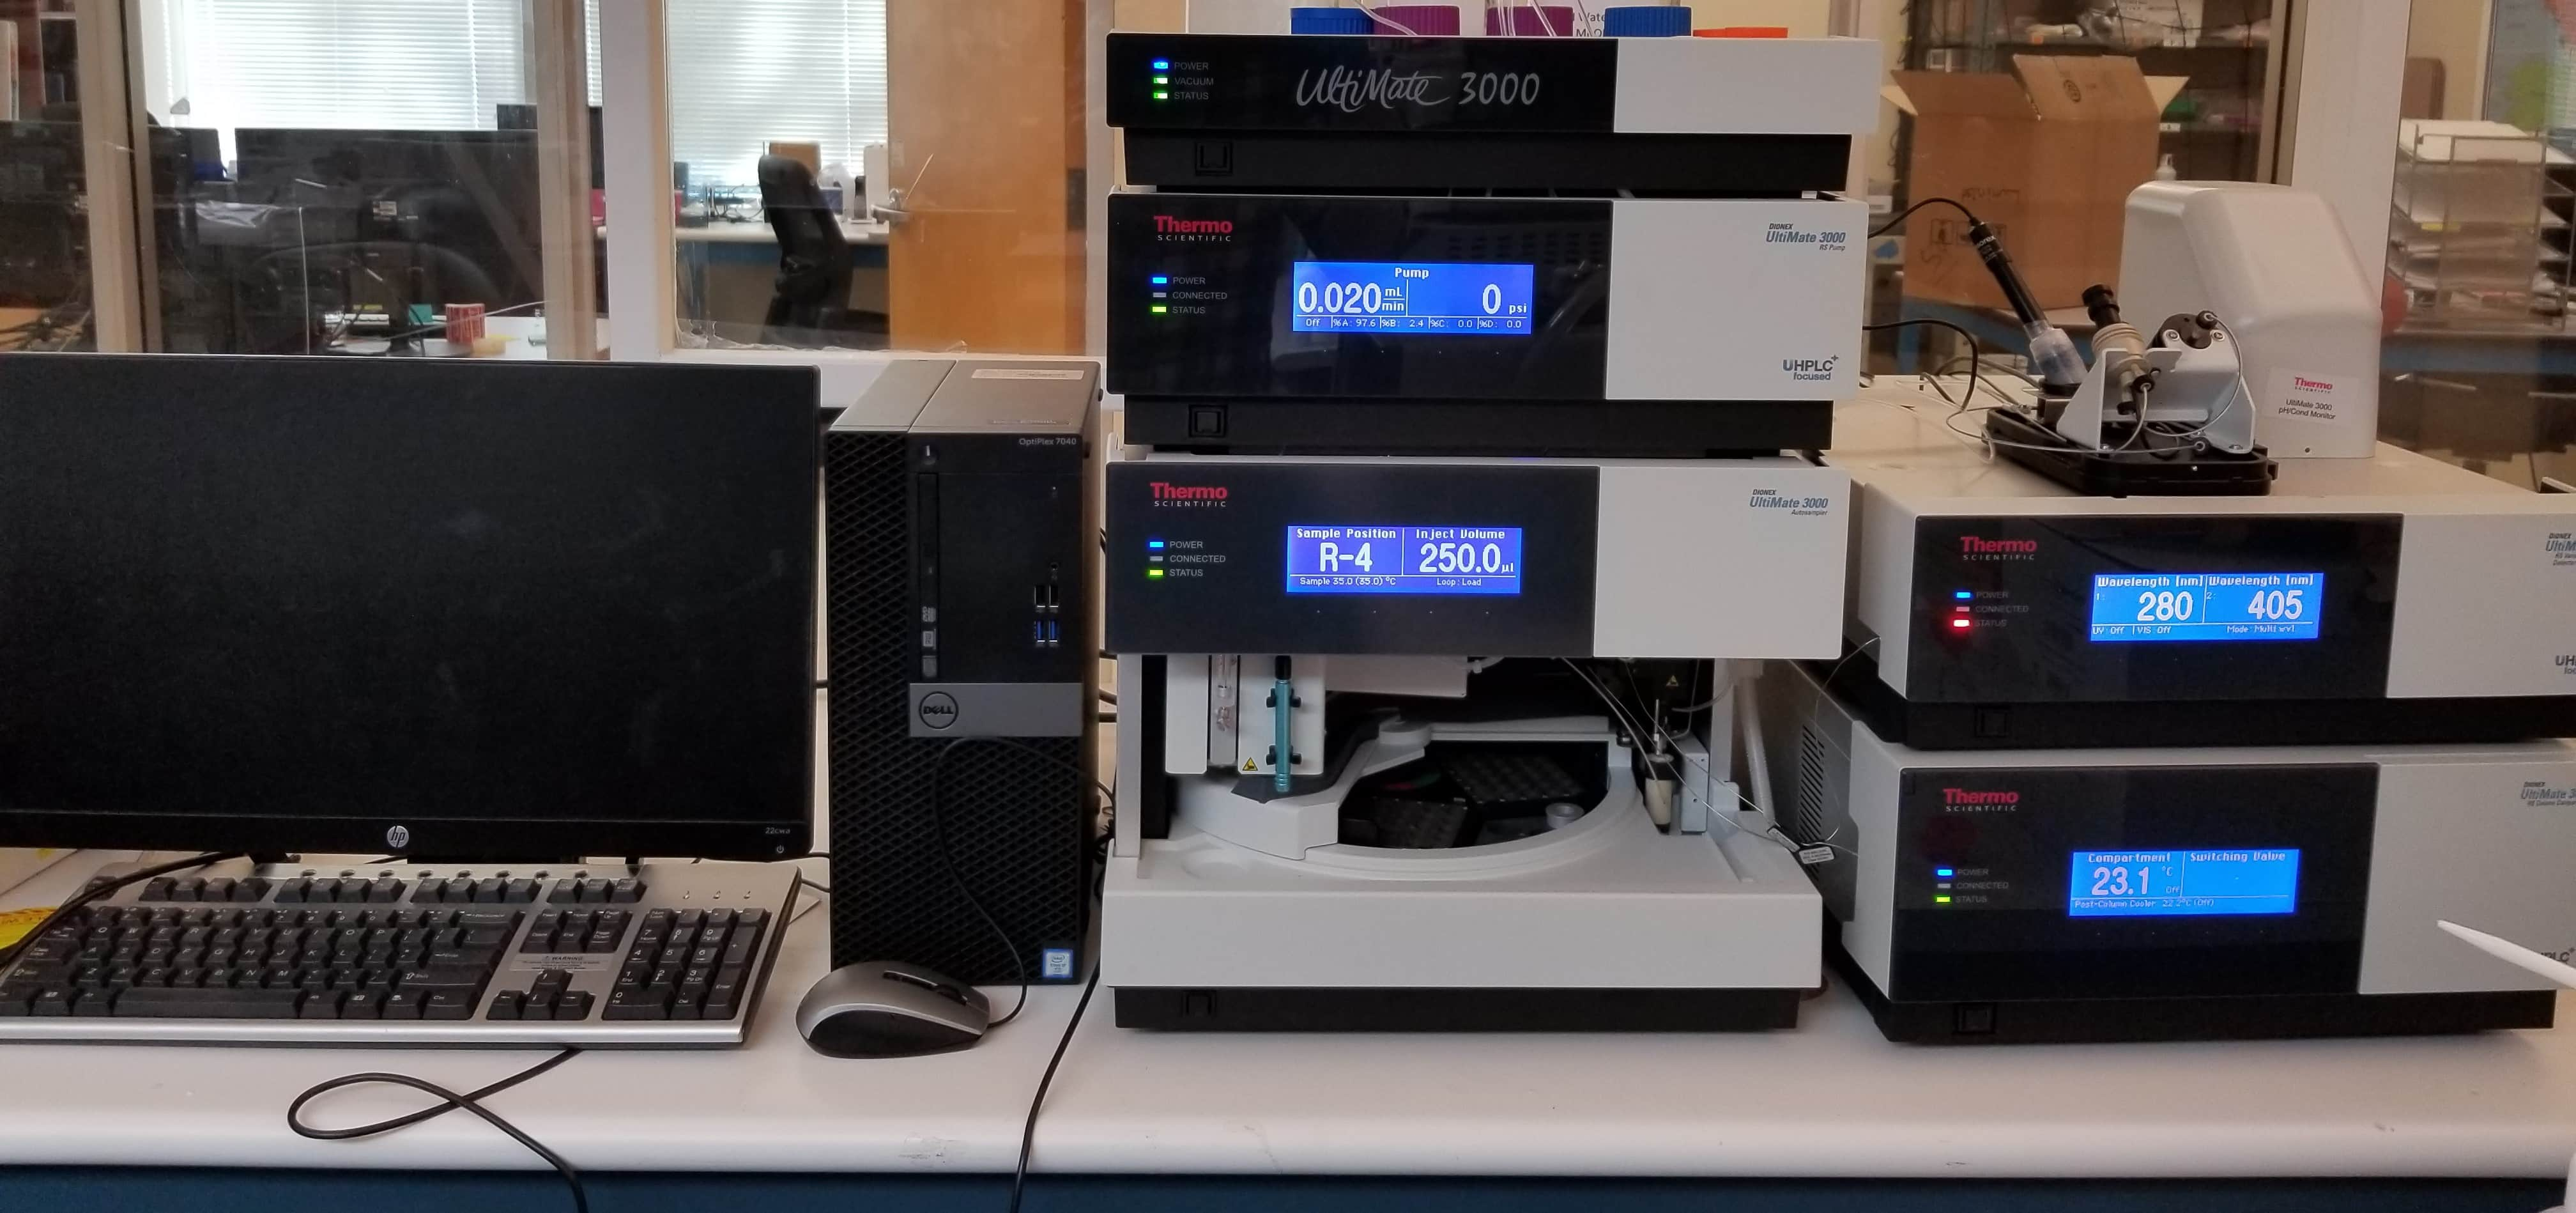 ThermoFisher UltiMate 3000 HPLC System With Accessories and Extended Warranty (Like New)